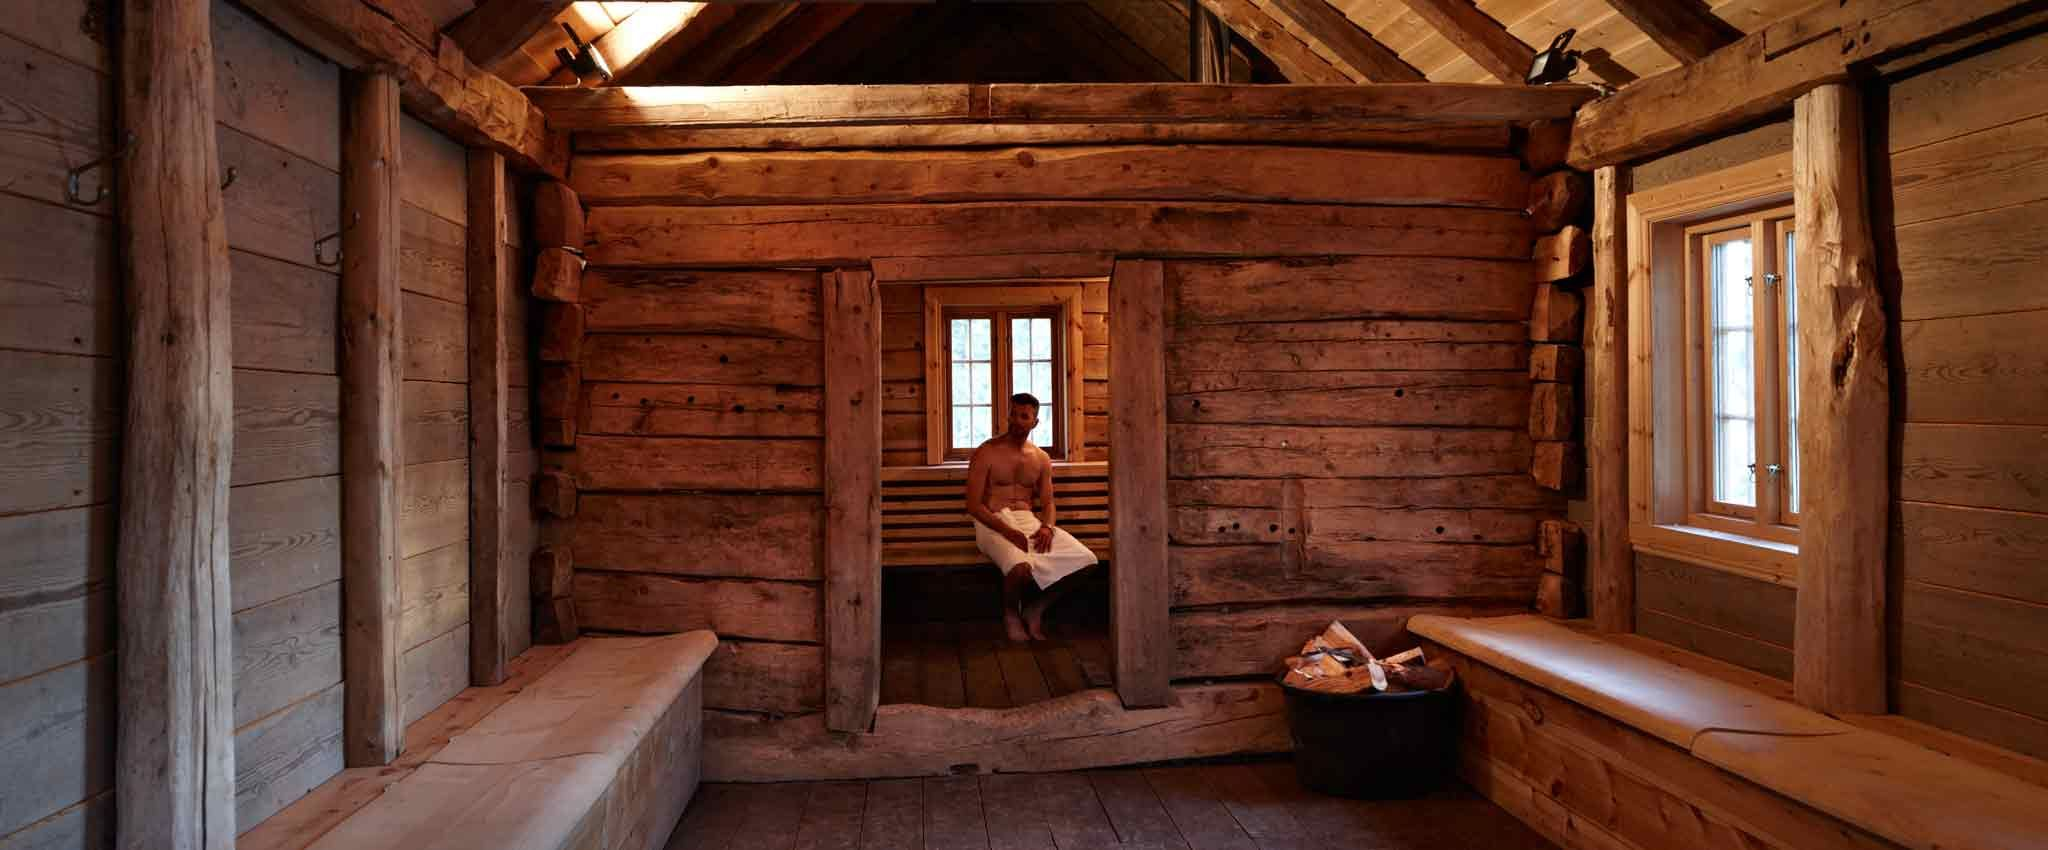 The sauna at Hardingasete by the Hardangerfjord, Norway